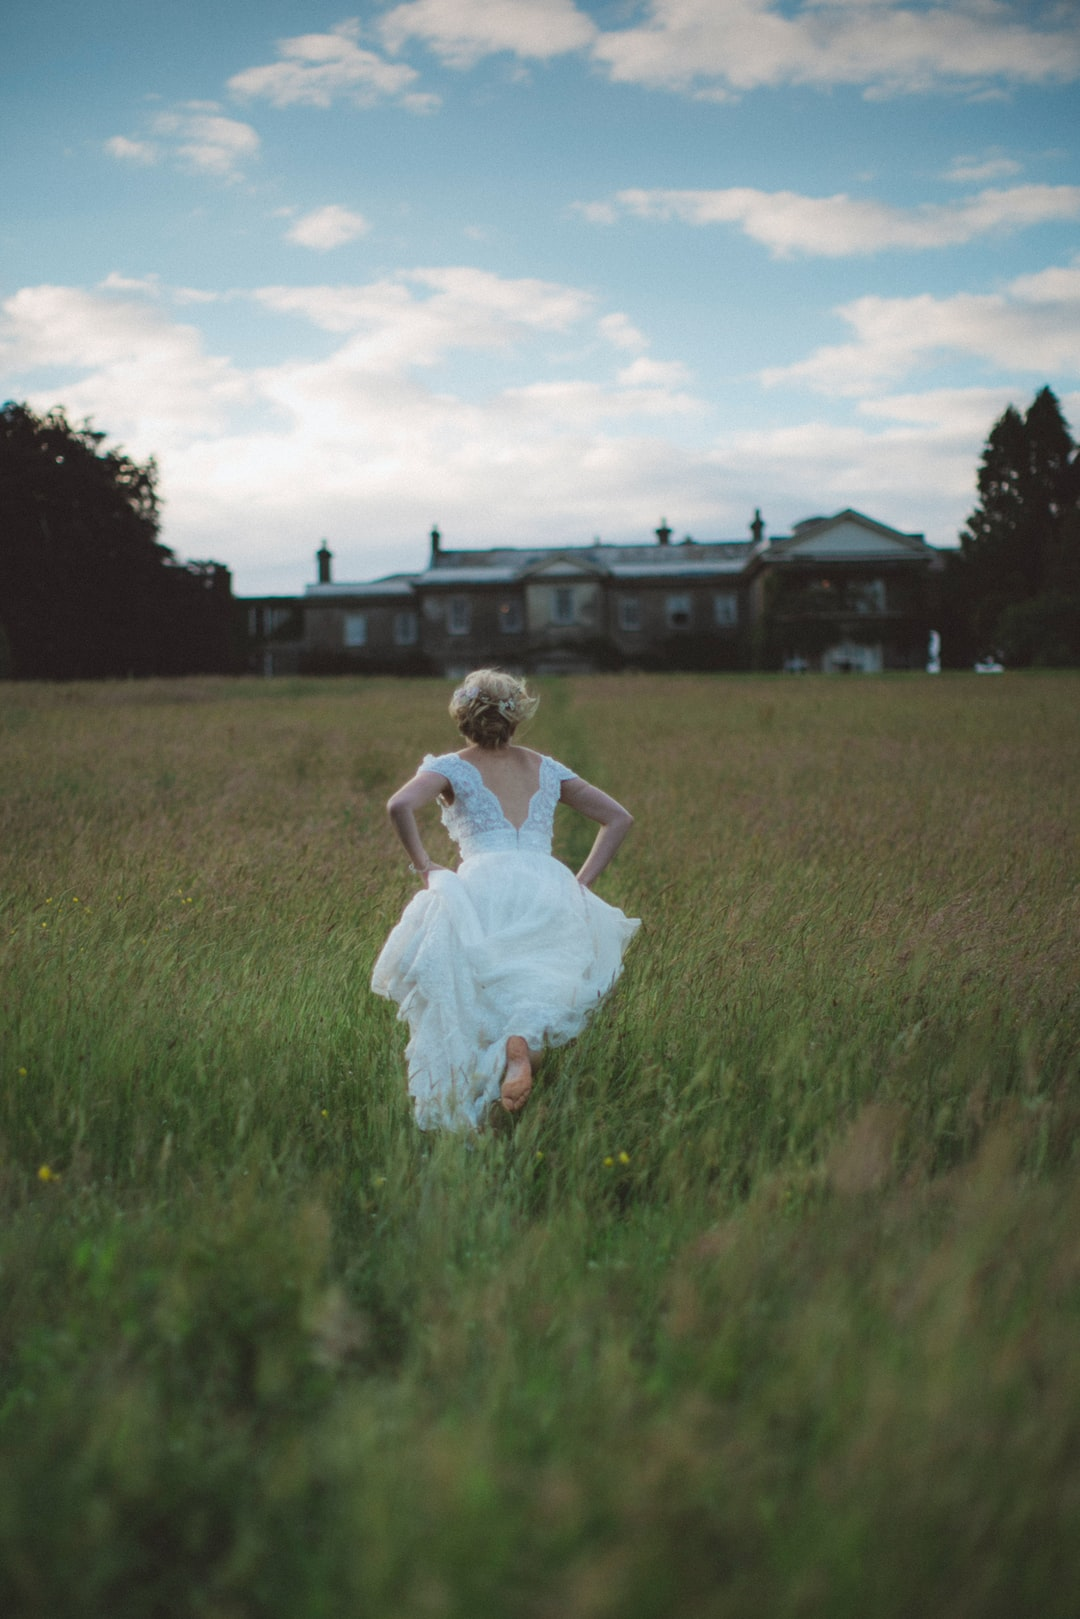 This is not your typical wedding shot which is why I love it! Simply asked the barefoot bride to run toward the house so that the moment felt spontaneous and natural.